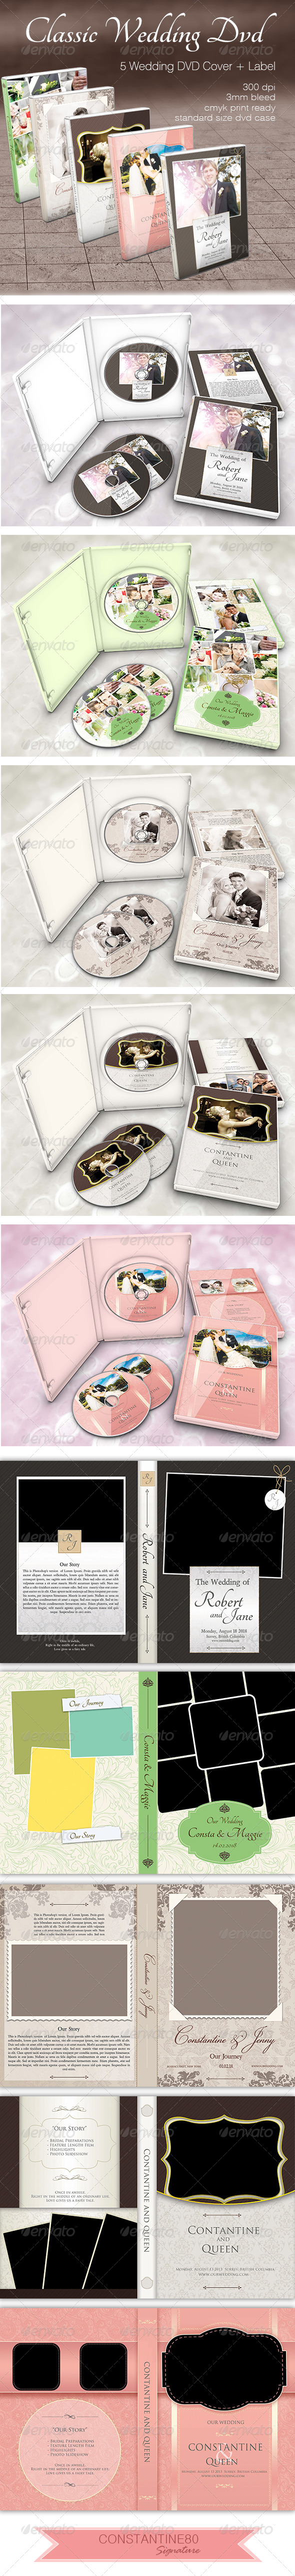 Classic Wedding Dvd - CD & DVD Artwork Print Templates